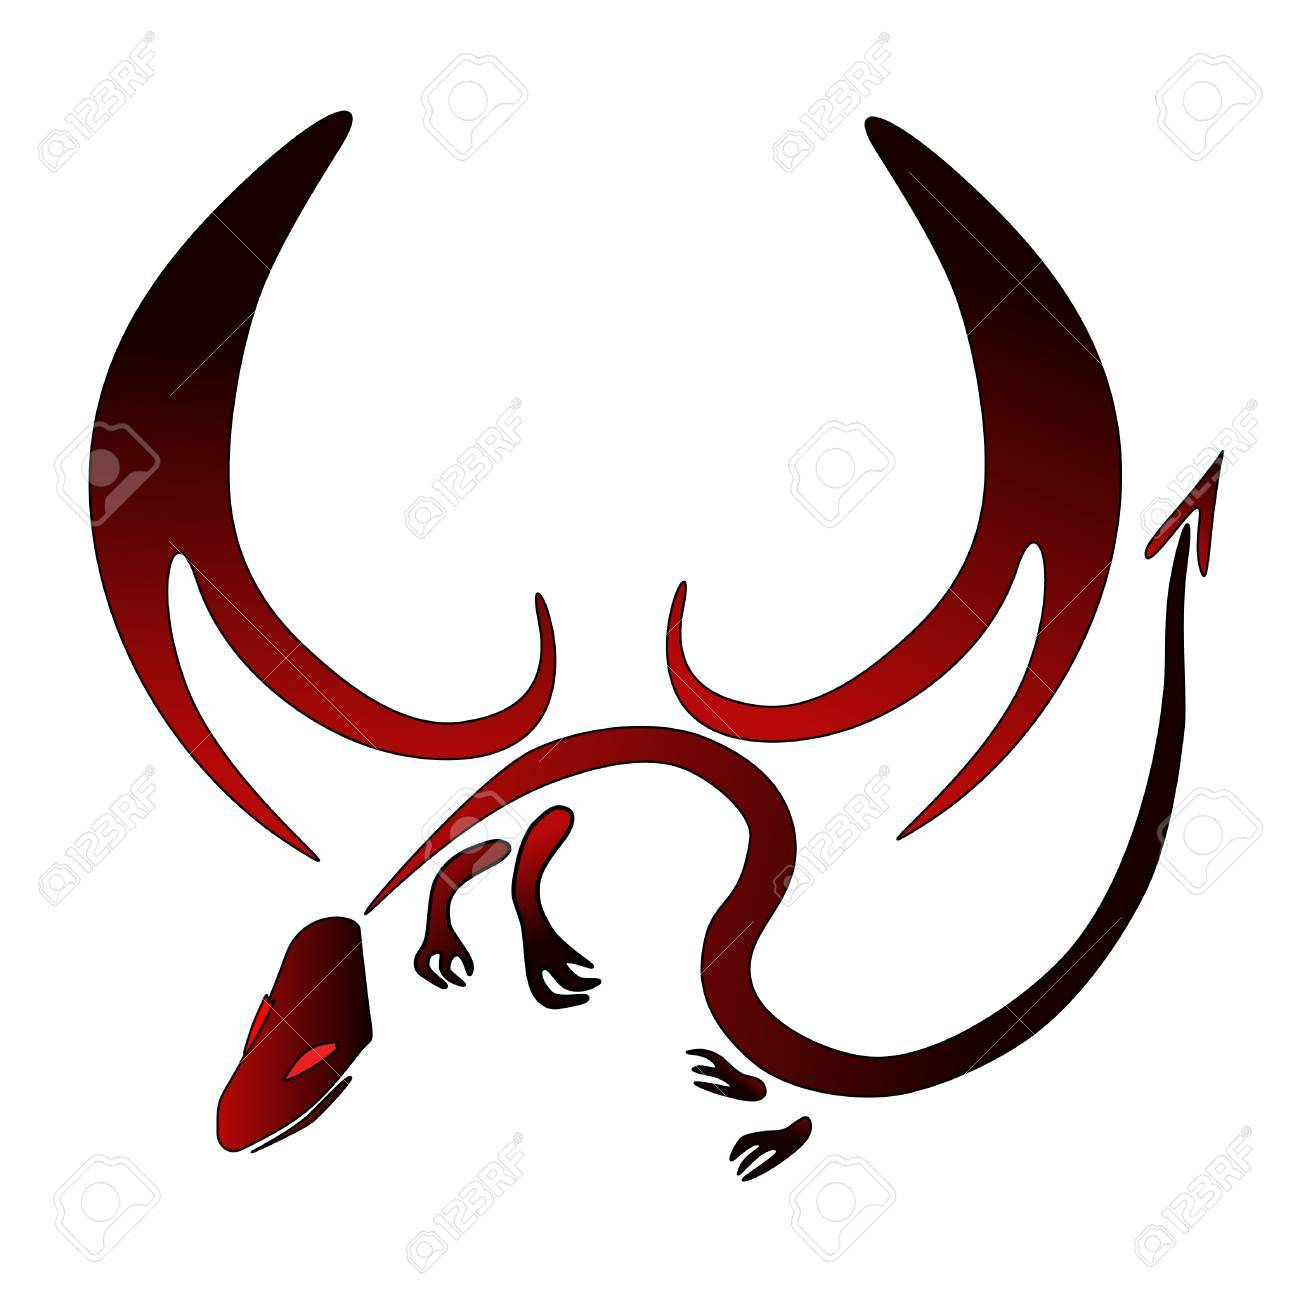 red and black vector dragon symbol Stock Vector - 5302075